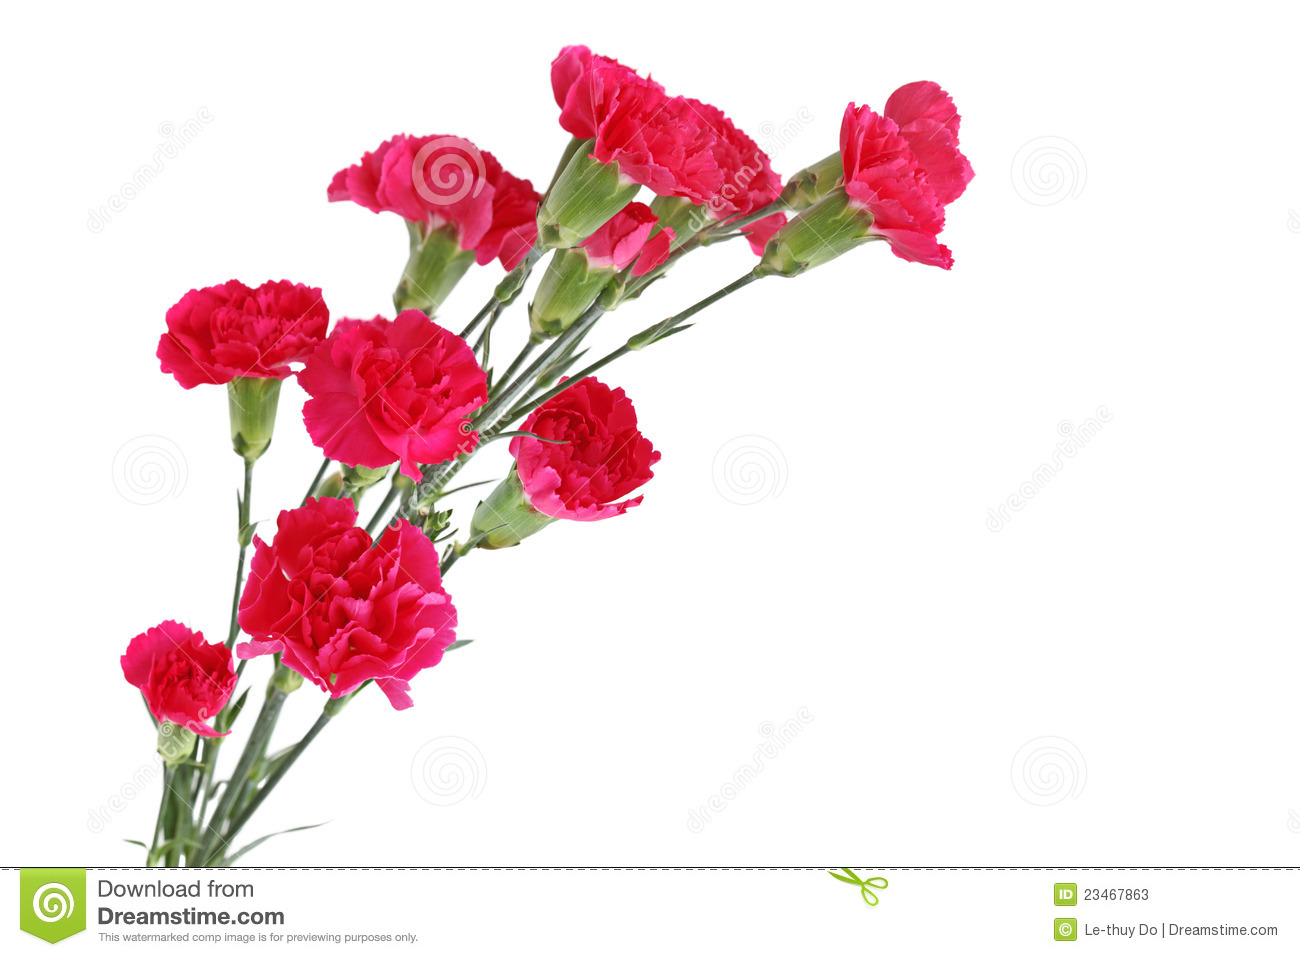 Red Carnation Dianthus Caryophyllus Flowers Isolated On White